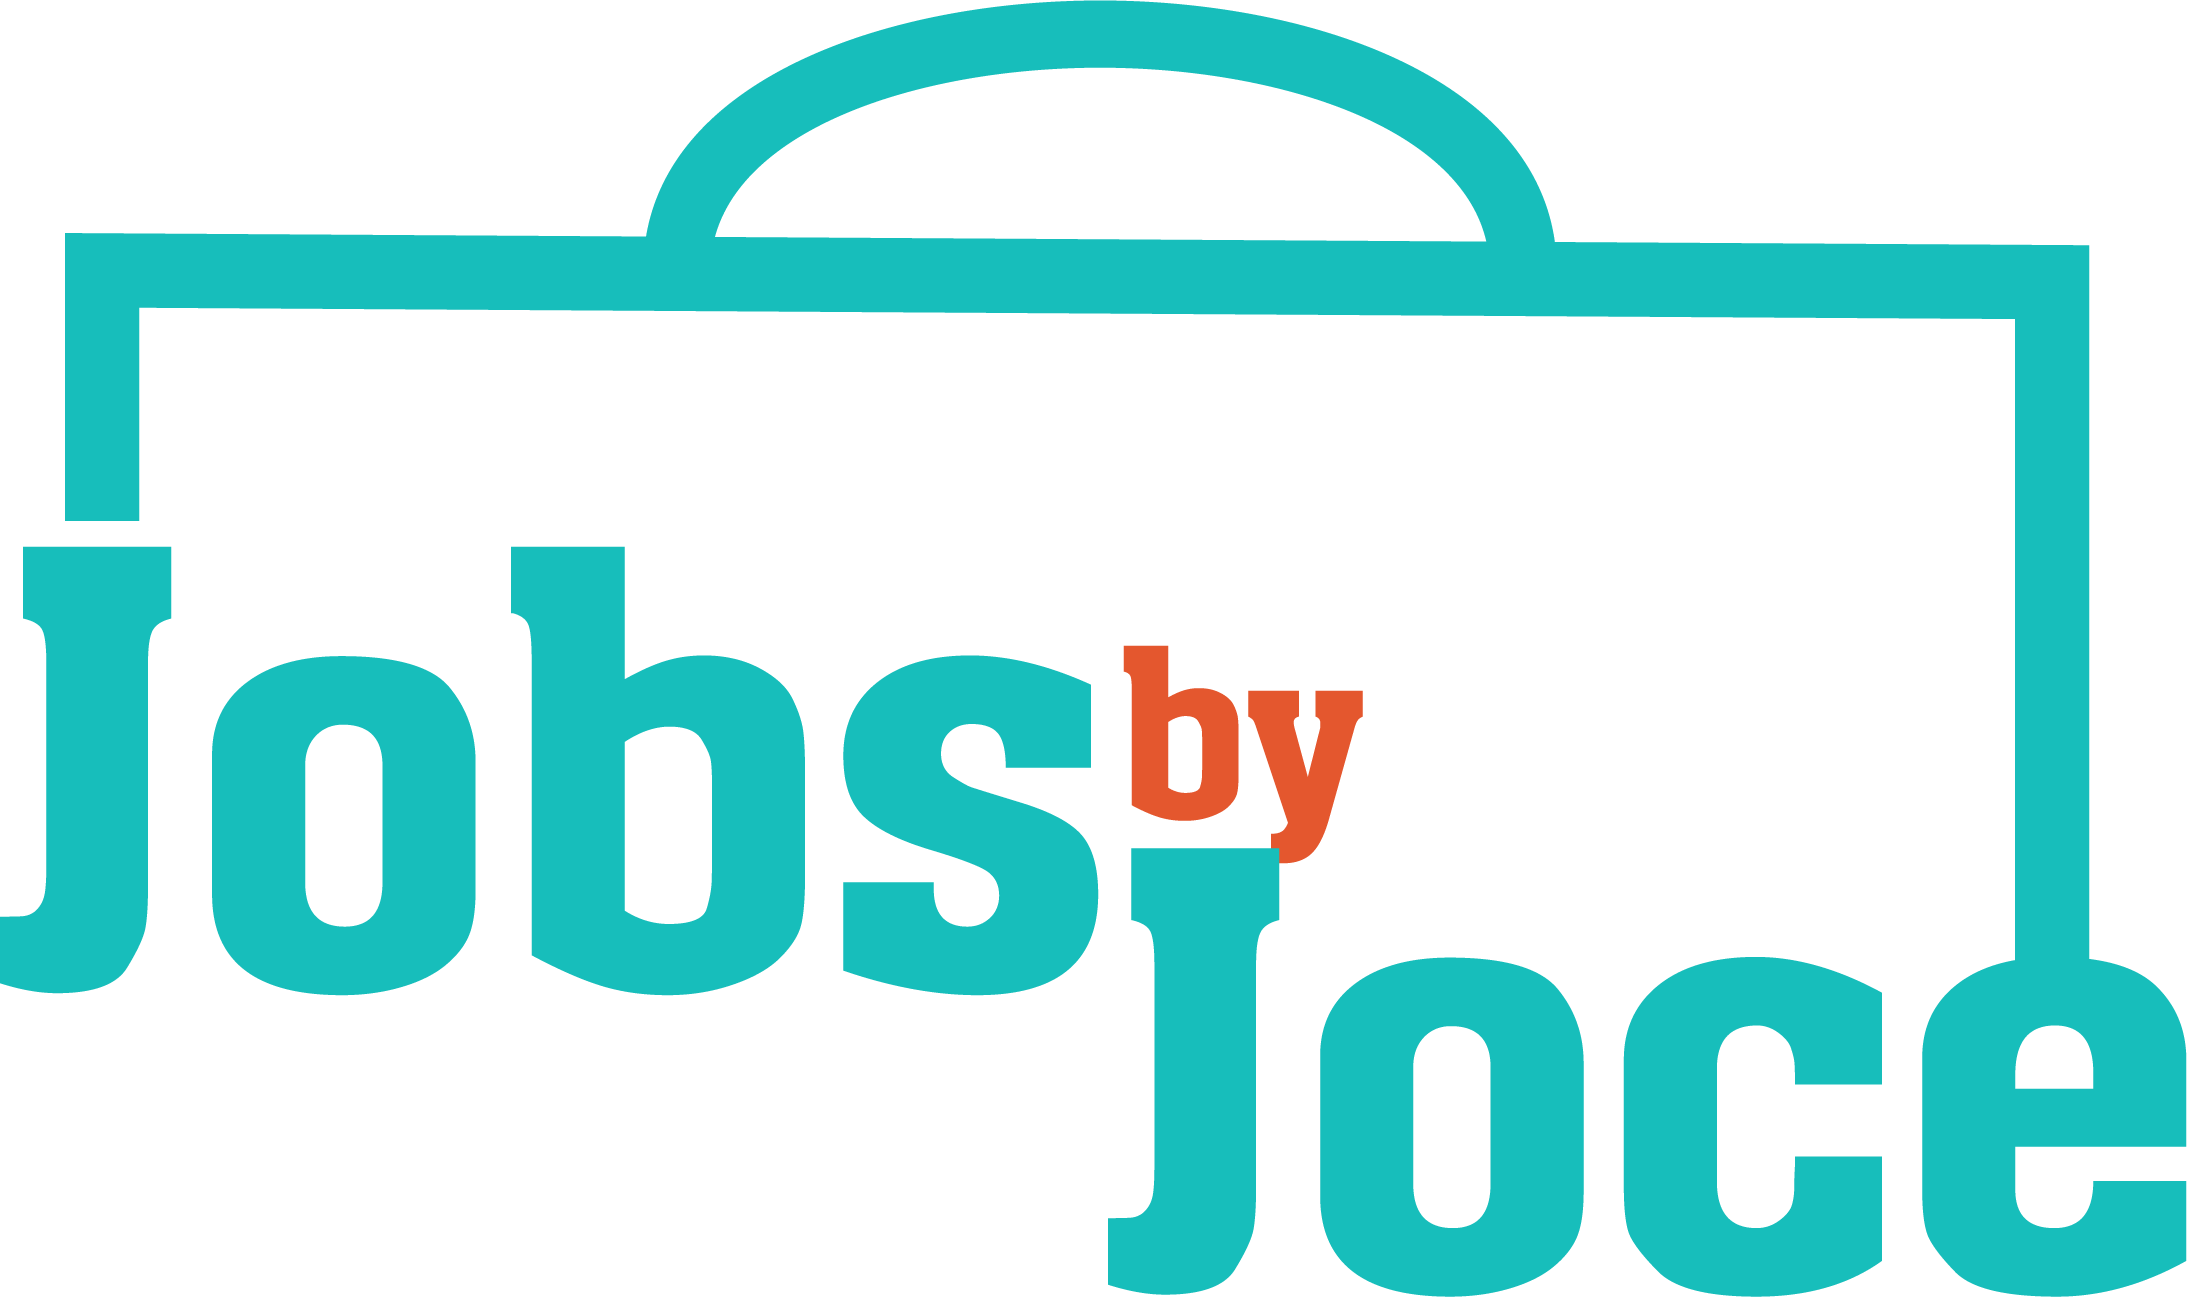 Jobs by Joce